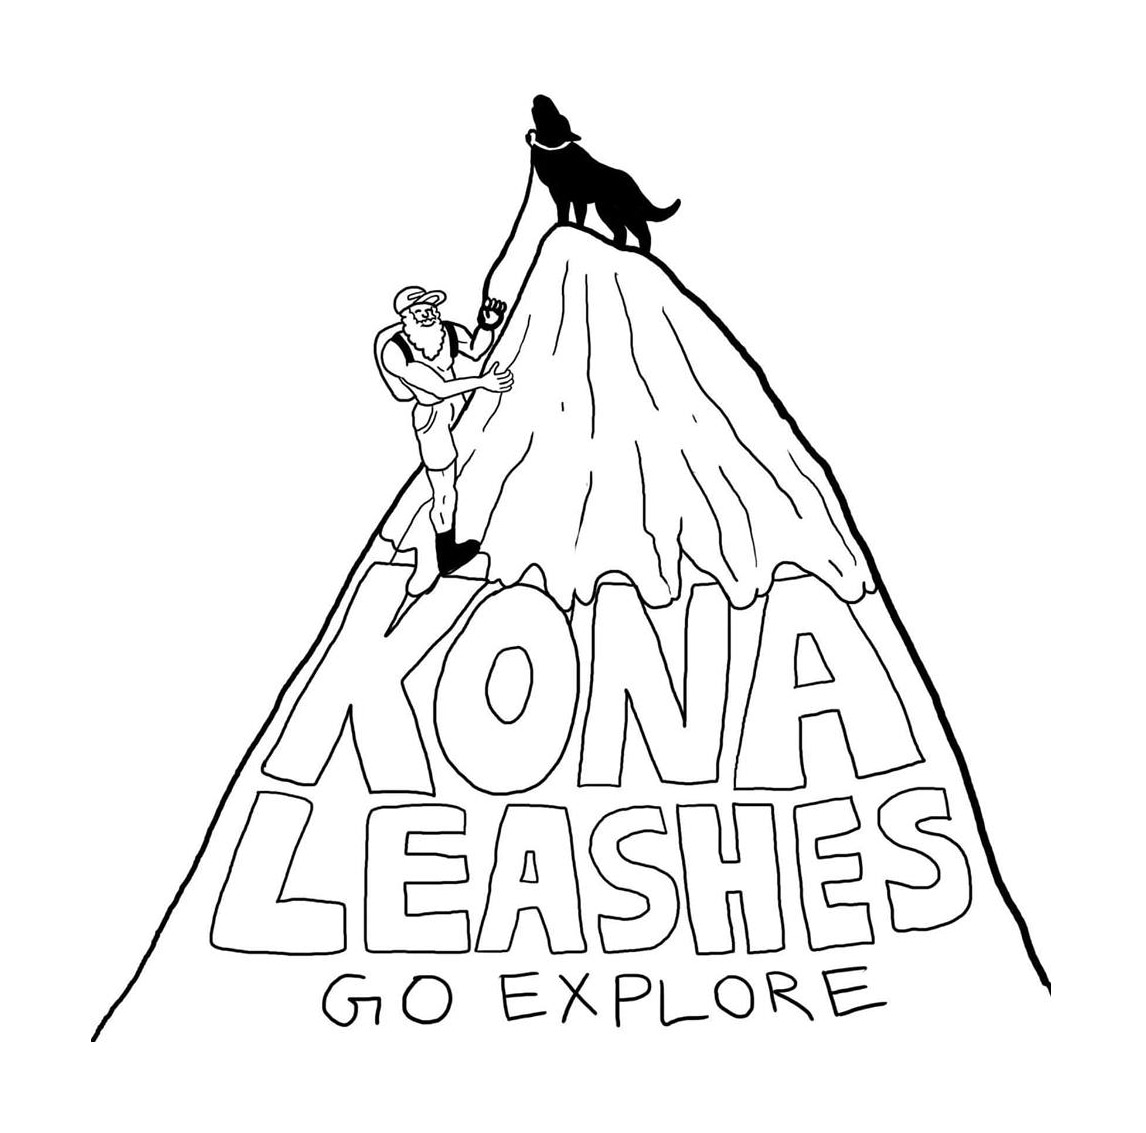 KONAleashes promo codes